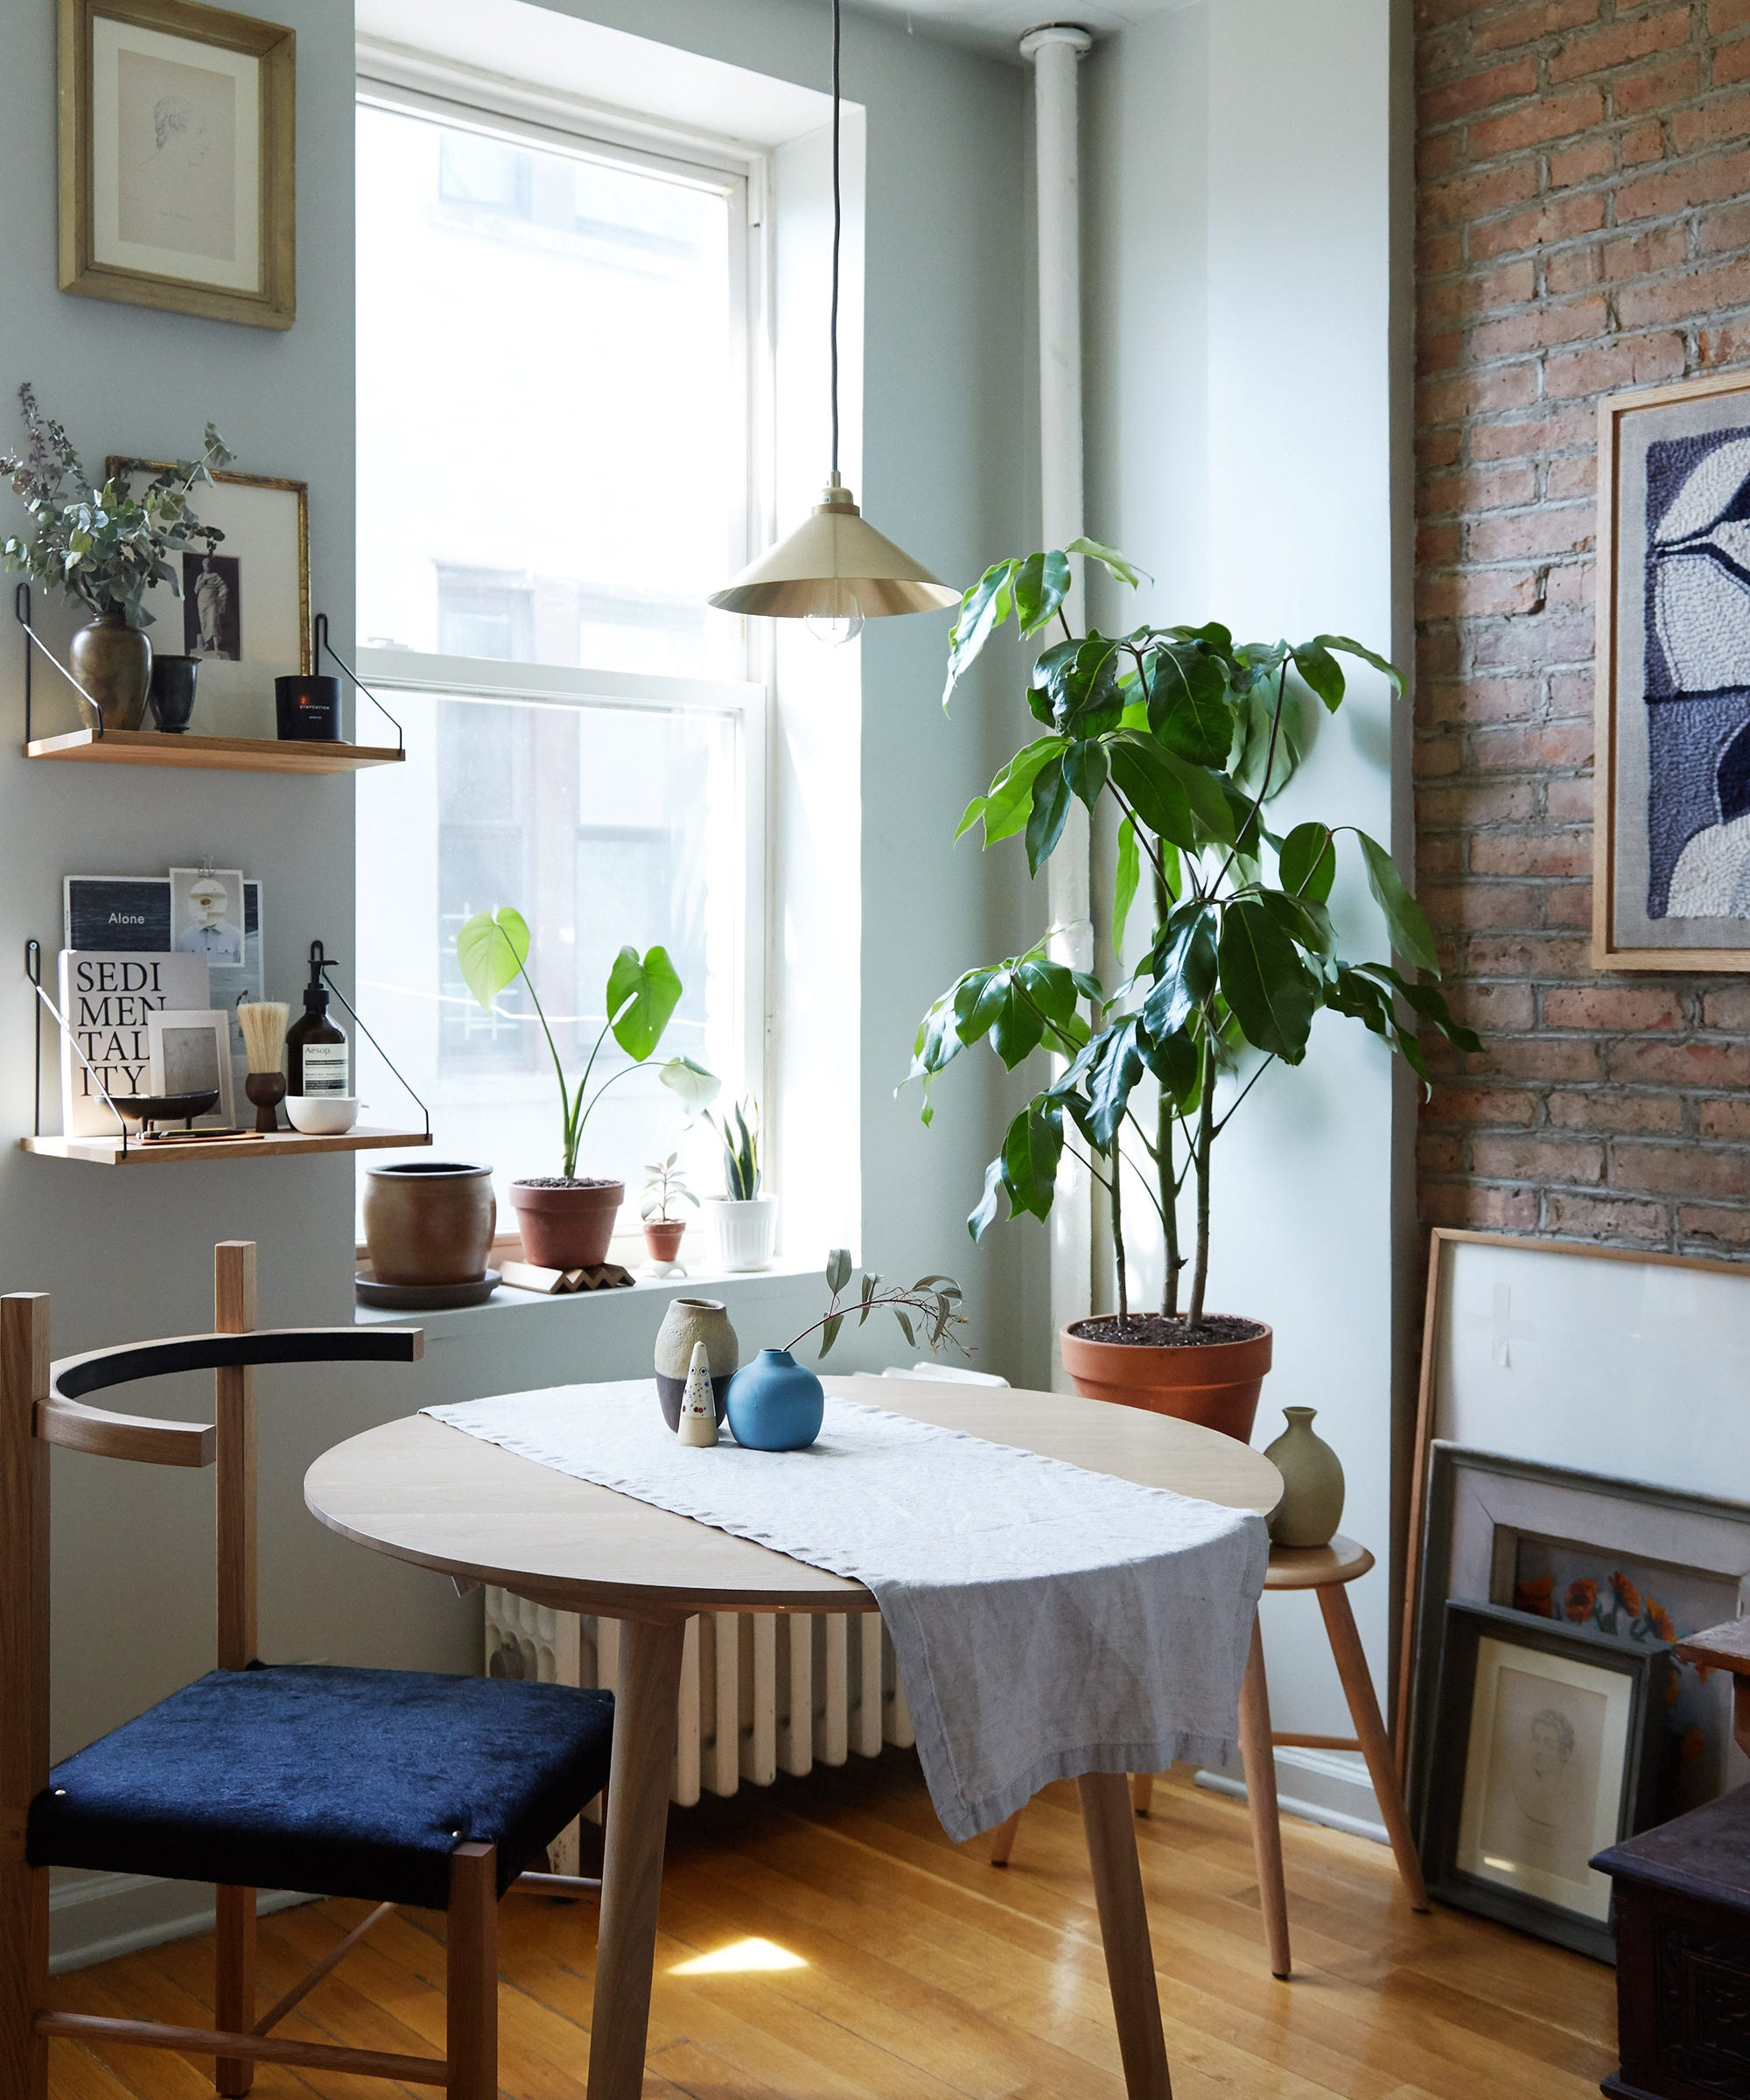 Small Apartment Design Tips - Solutions For Tiny Rooms